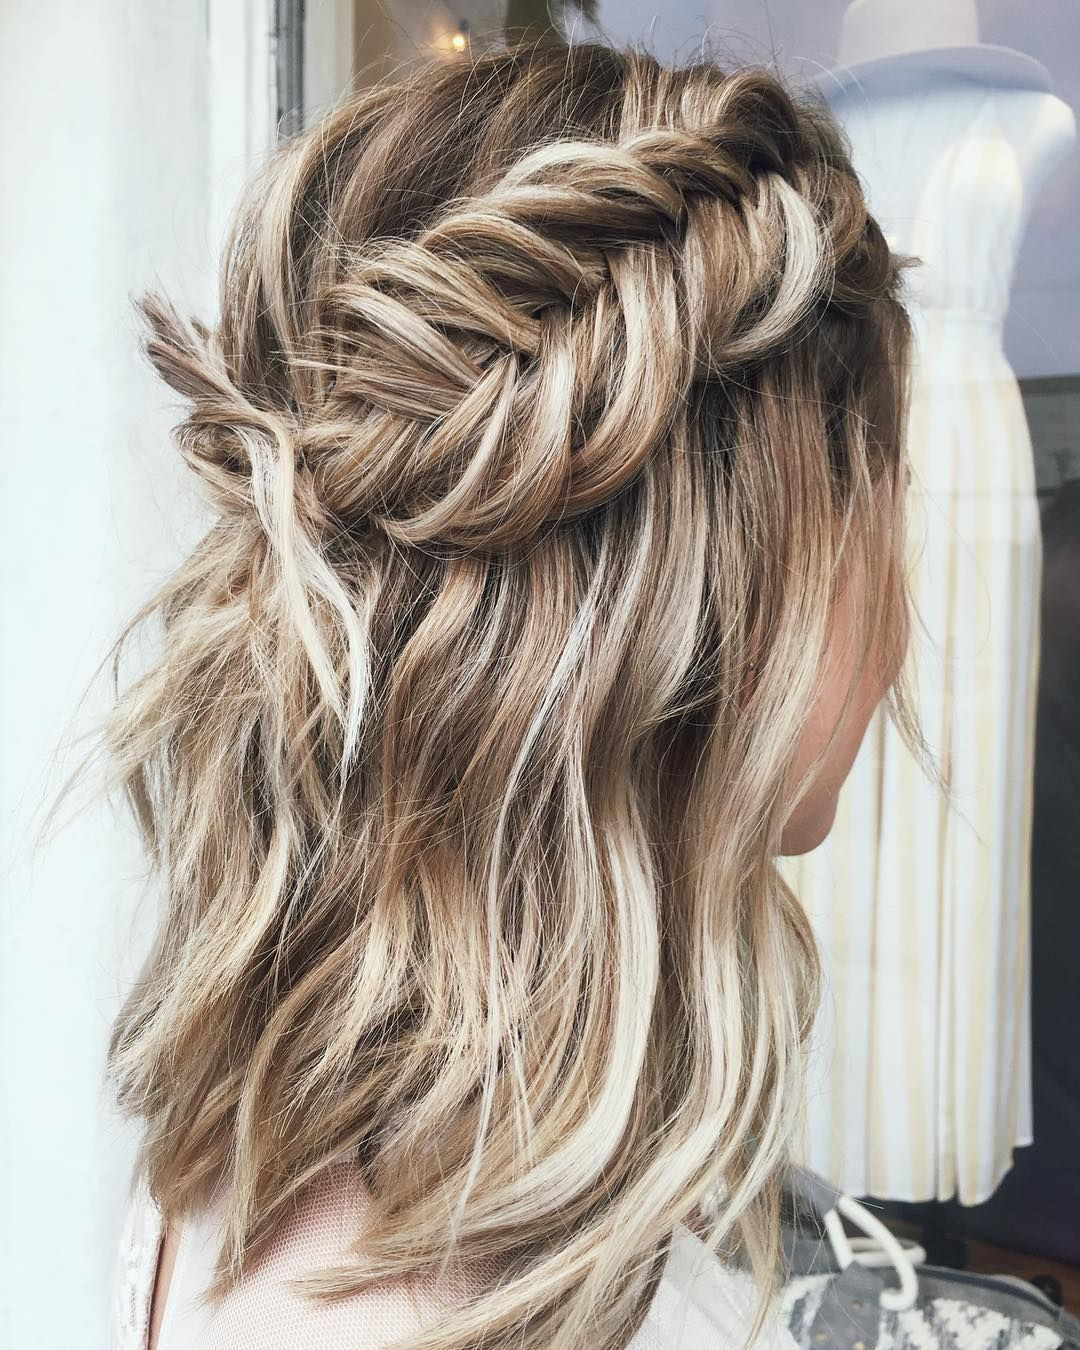 32 unique braid hairstyle ideas you should try